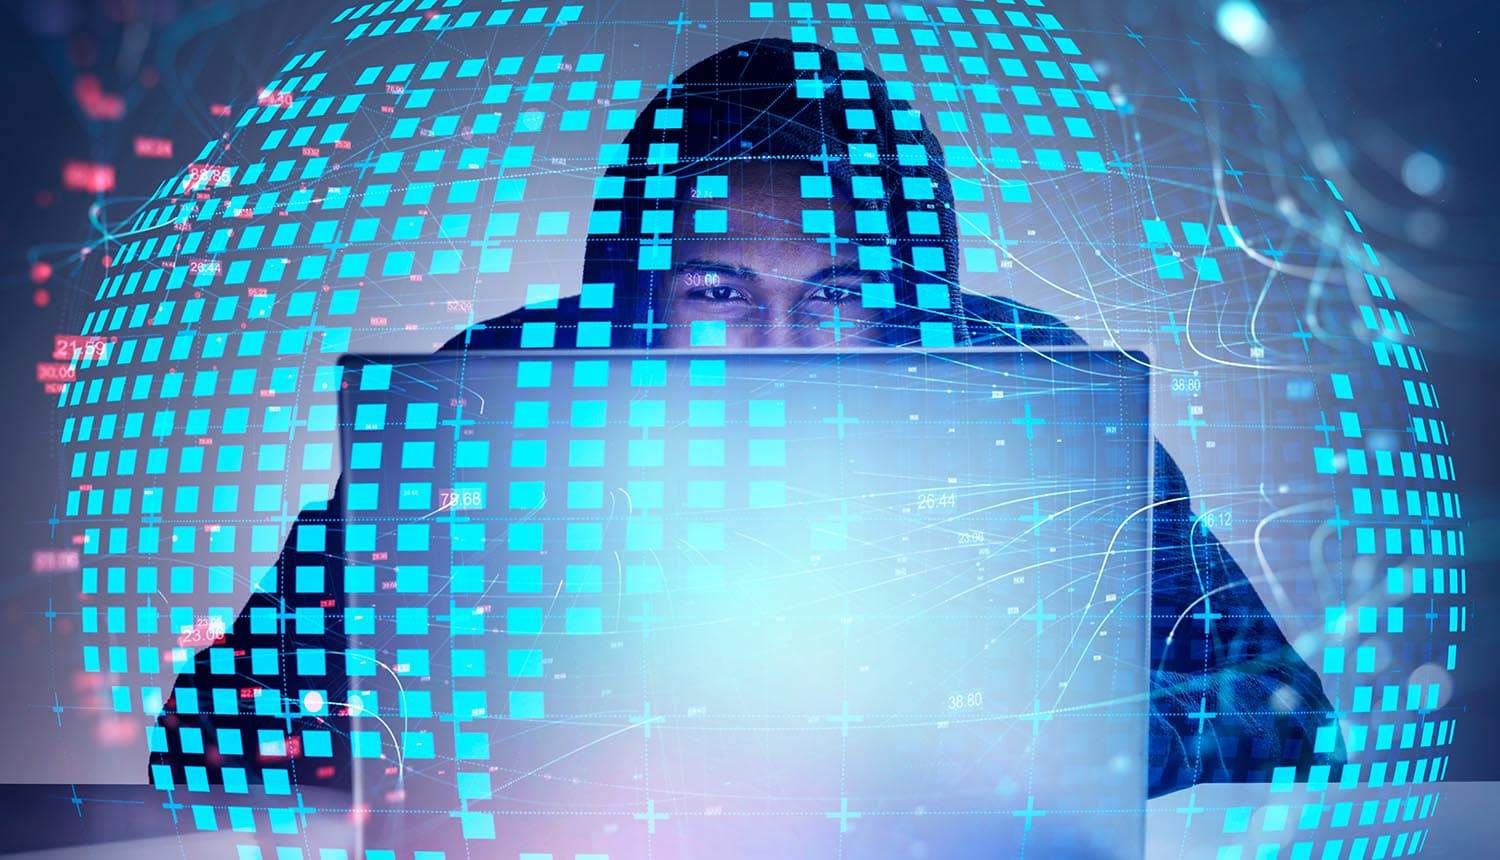 Hacker working on laptop showing how the breach of leading domain name registrar could lead to an explosion in phishing scams